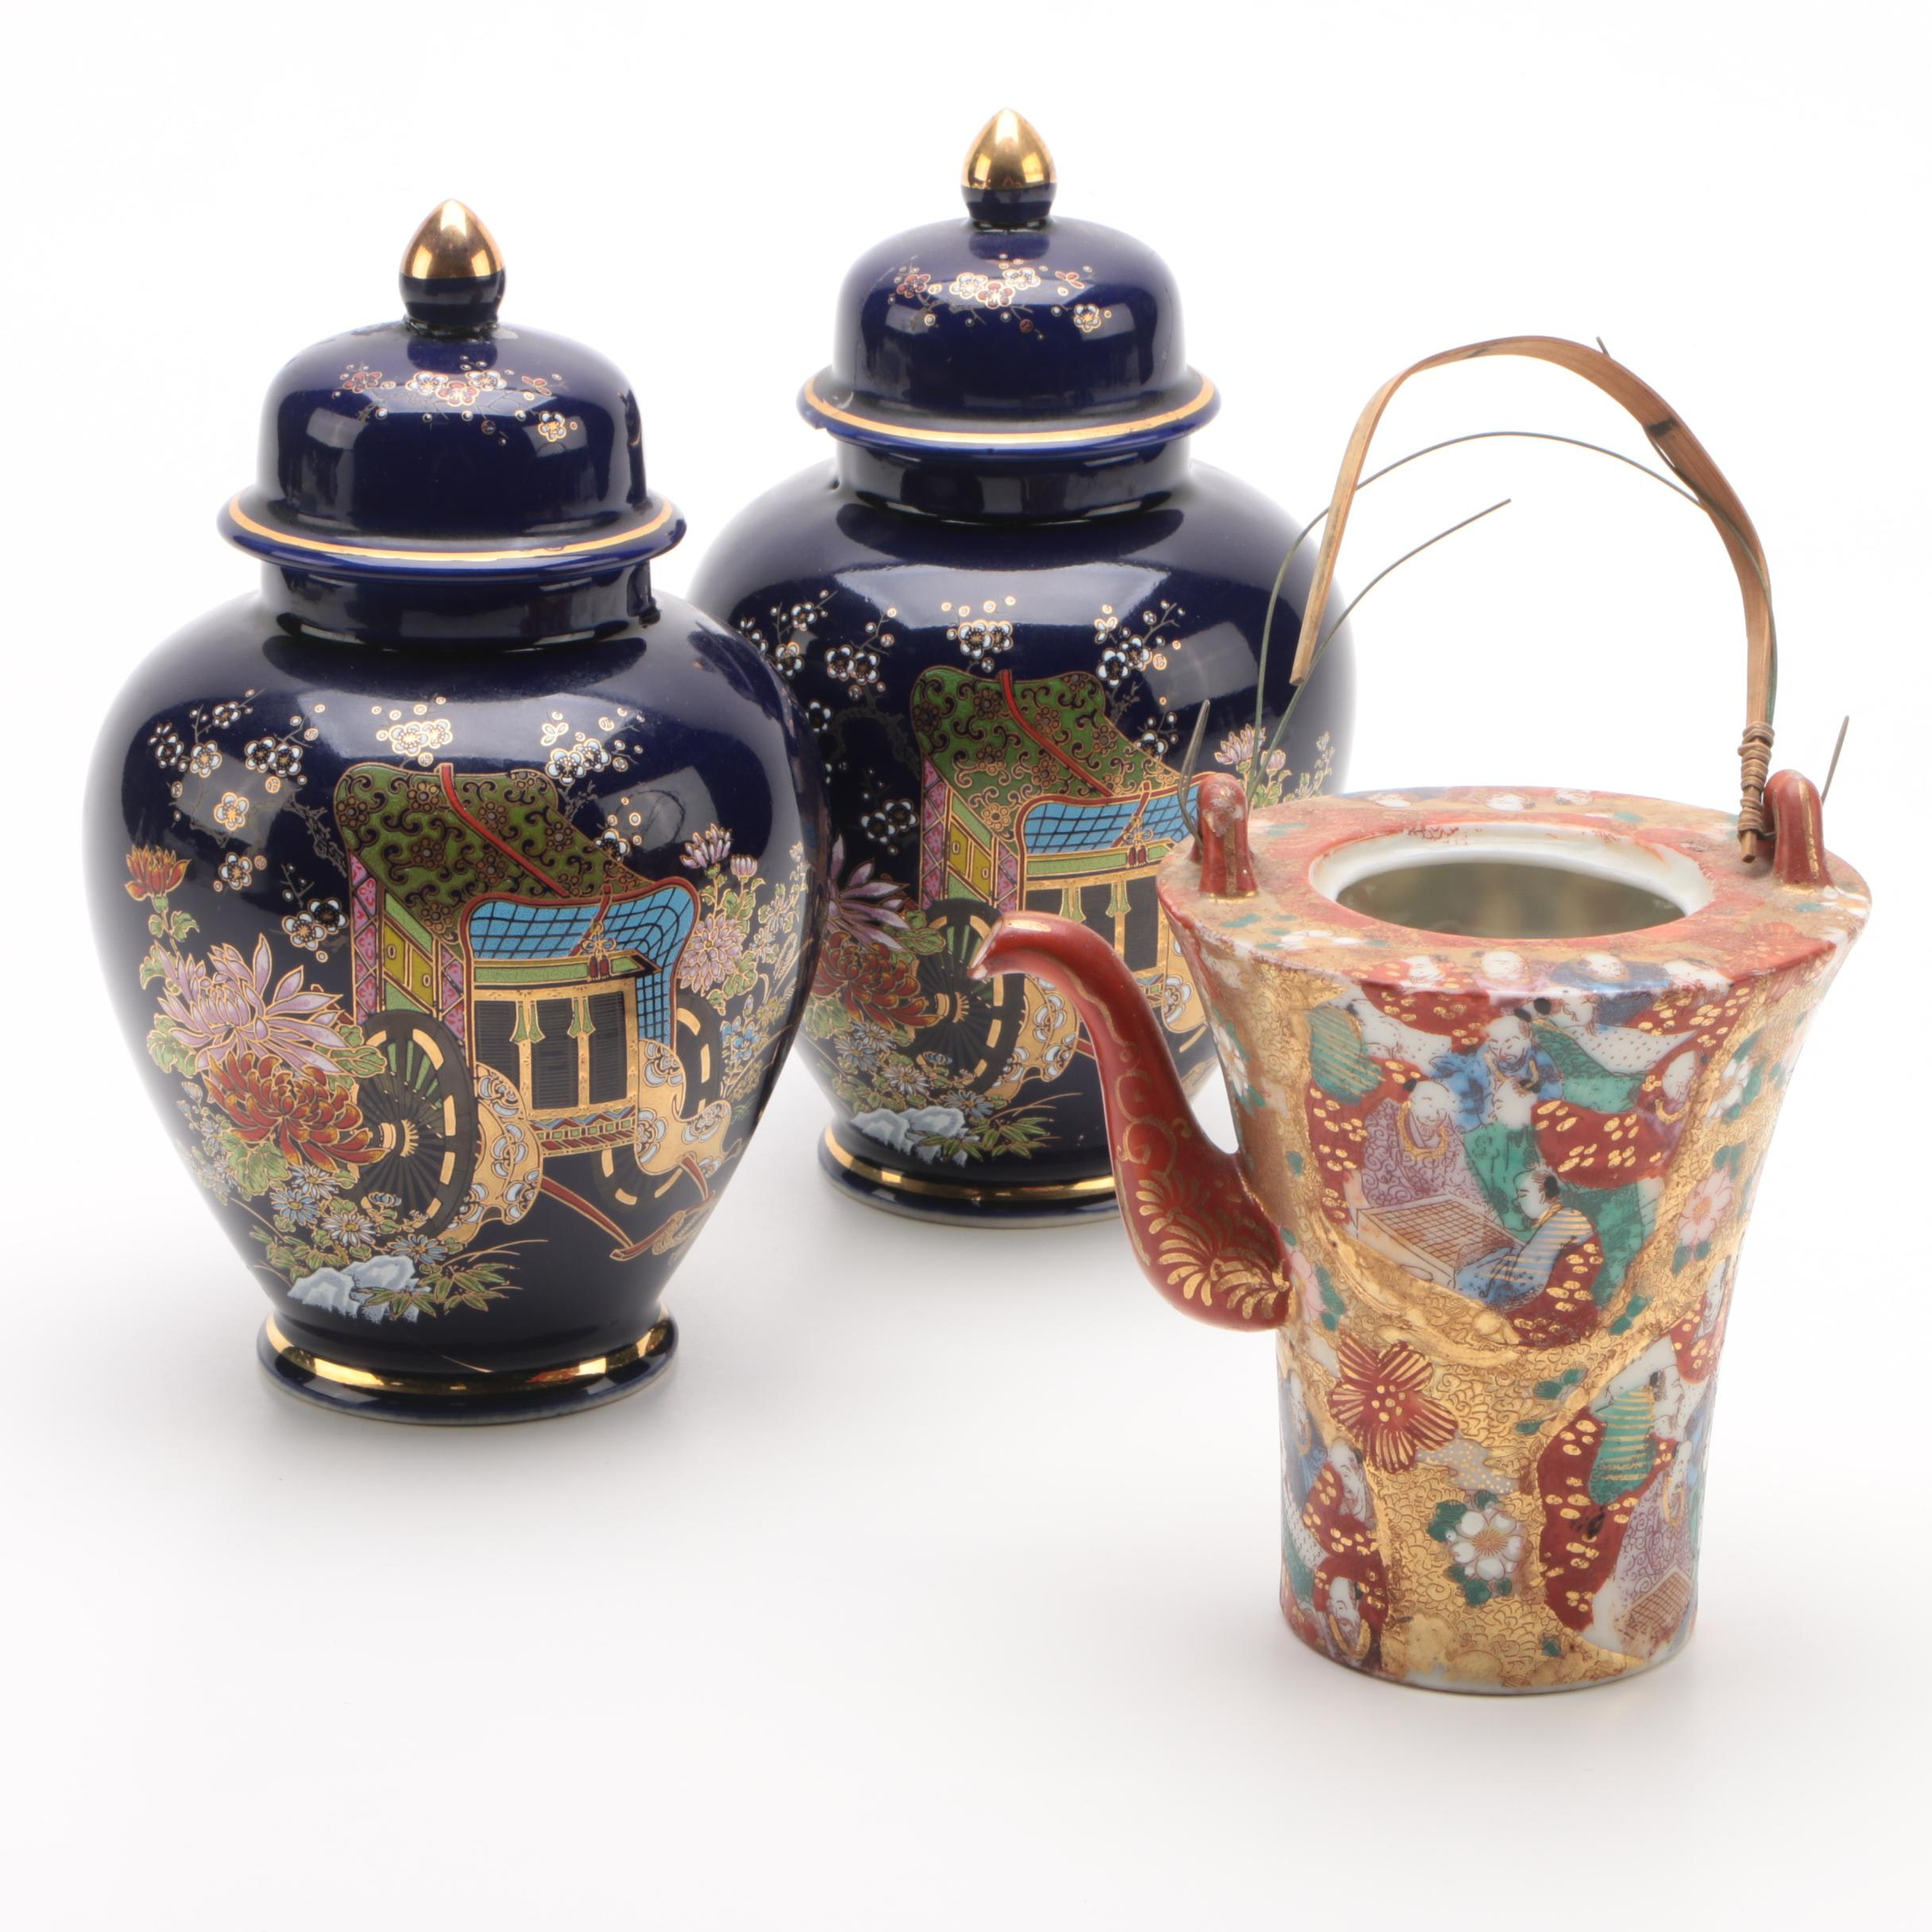 Japanese Porcelain Ginger Jars with Kutani Porcelain Teapot